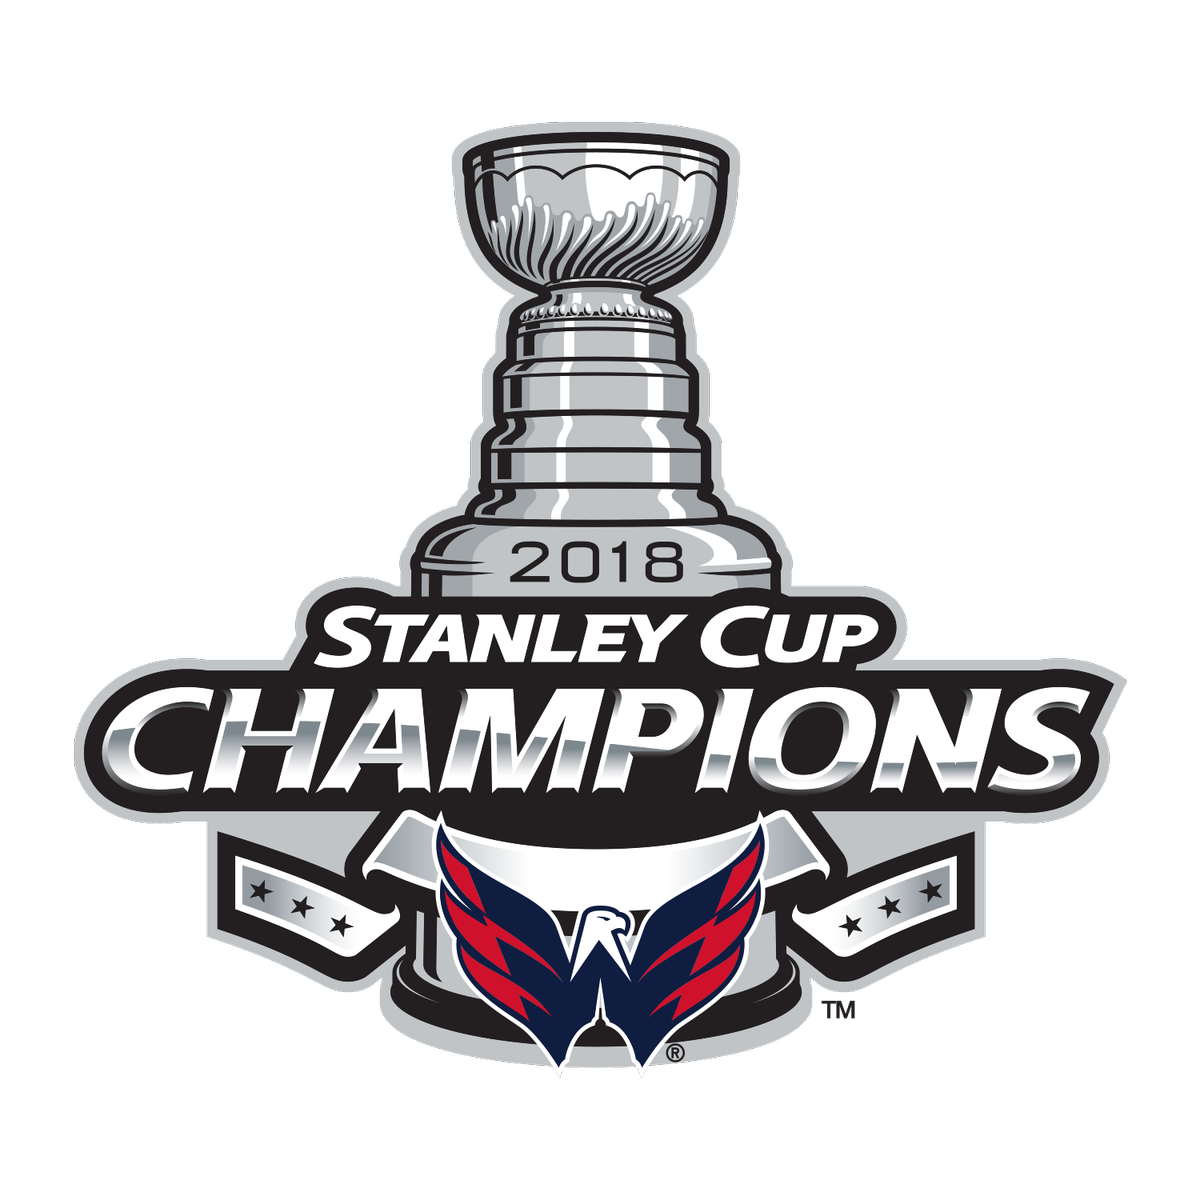 Playoffs Outerwear Cup Capitals Washington 2018 Logo PNG Image